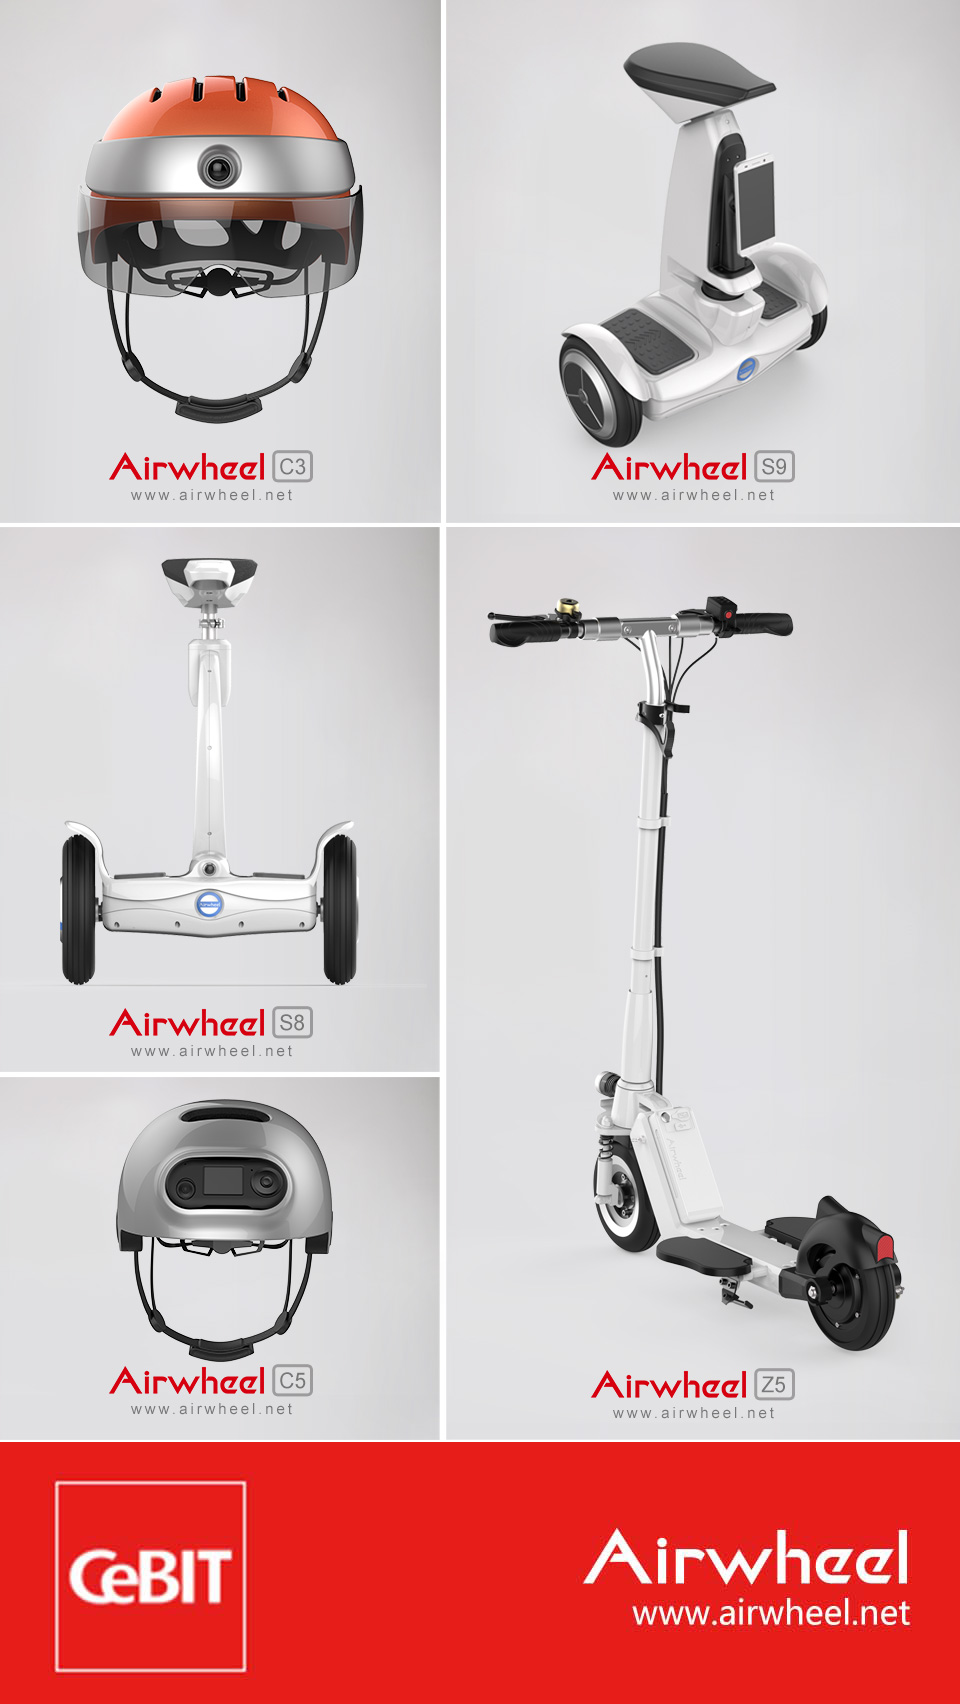 Airwheel CeBIT 2016